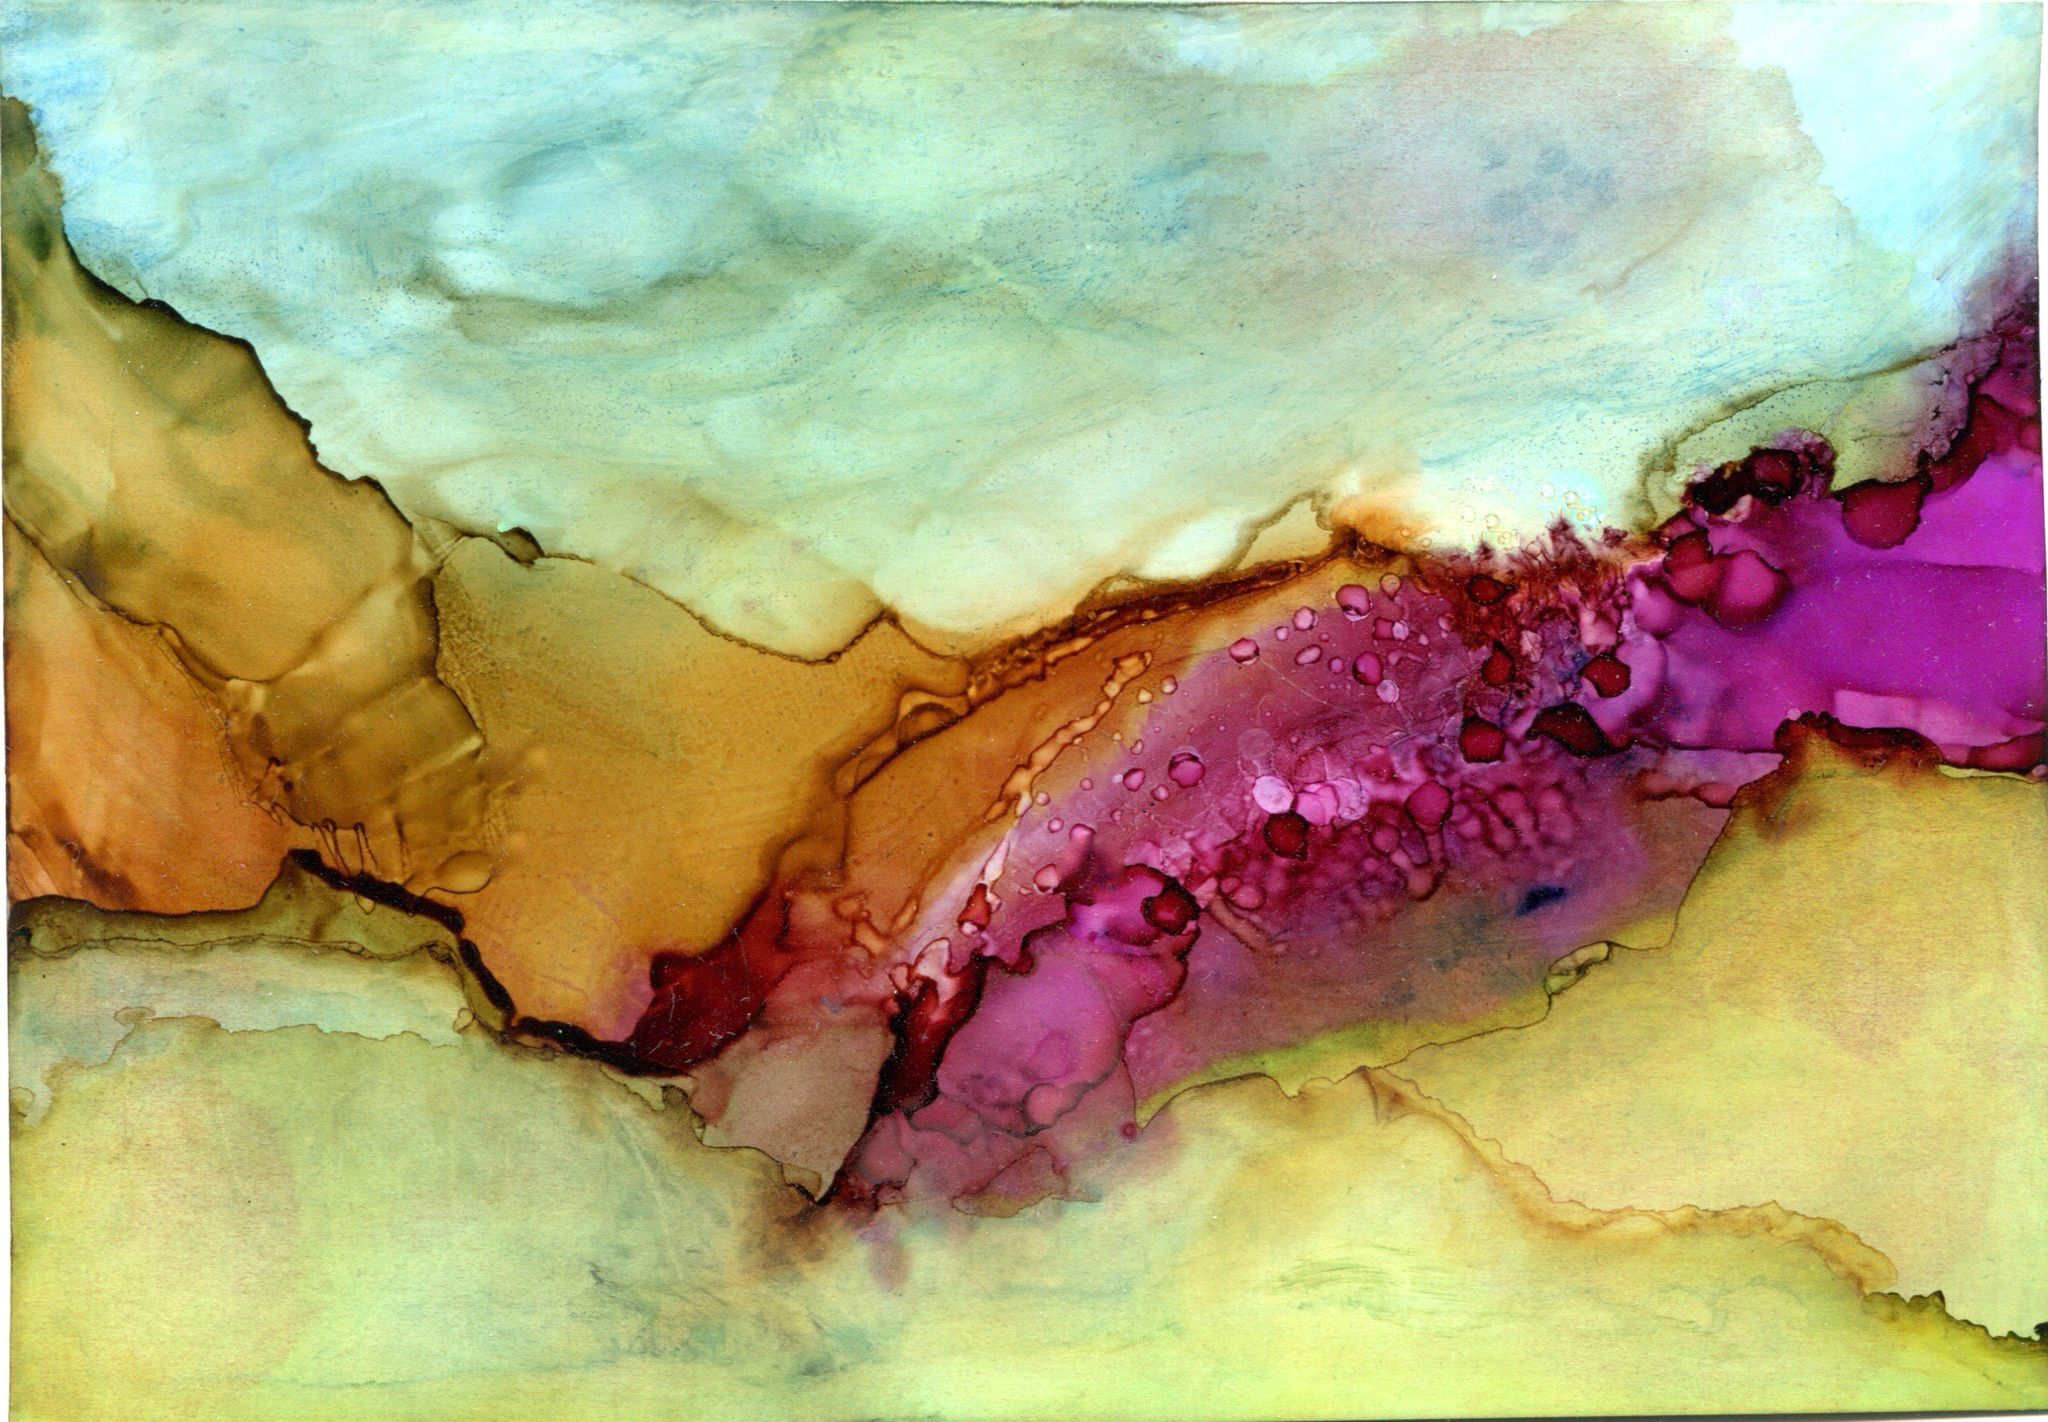 Alcohol ink by Susan Lucas.